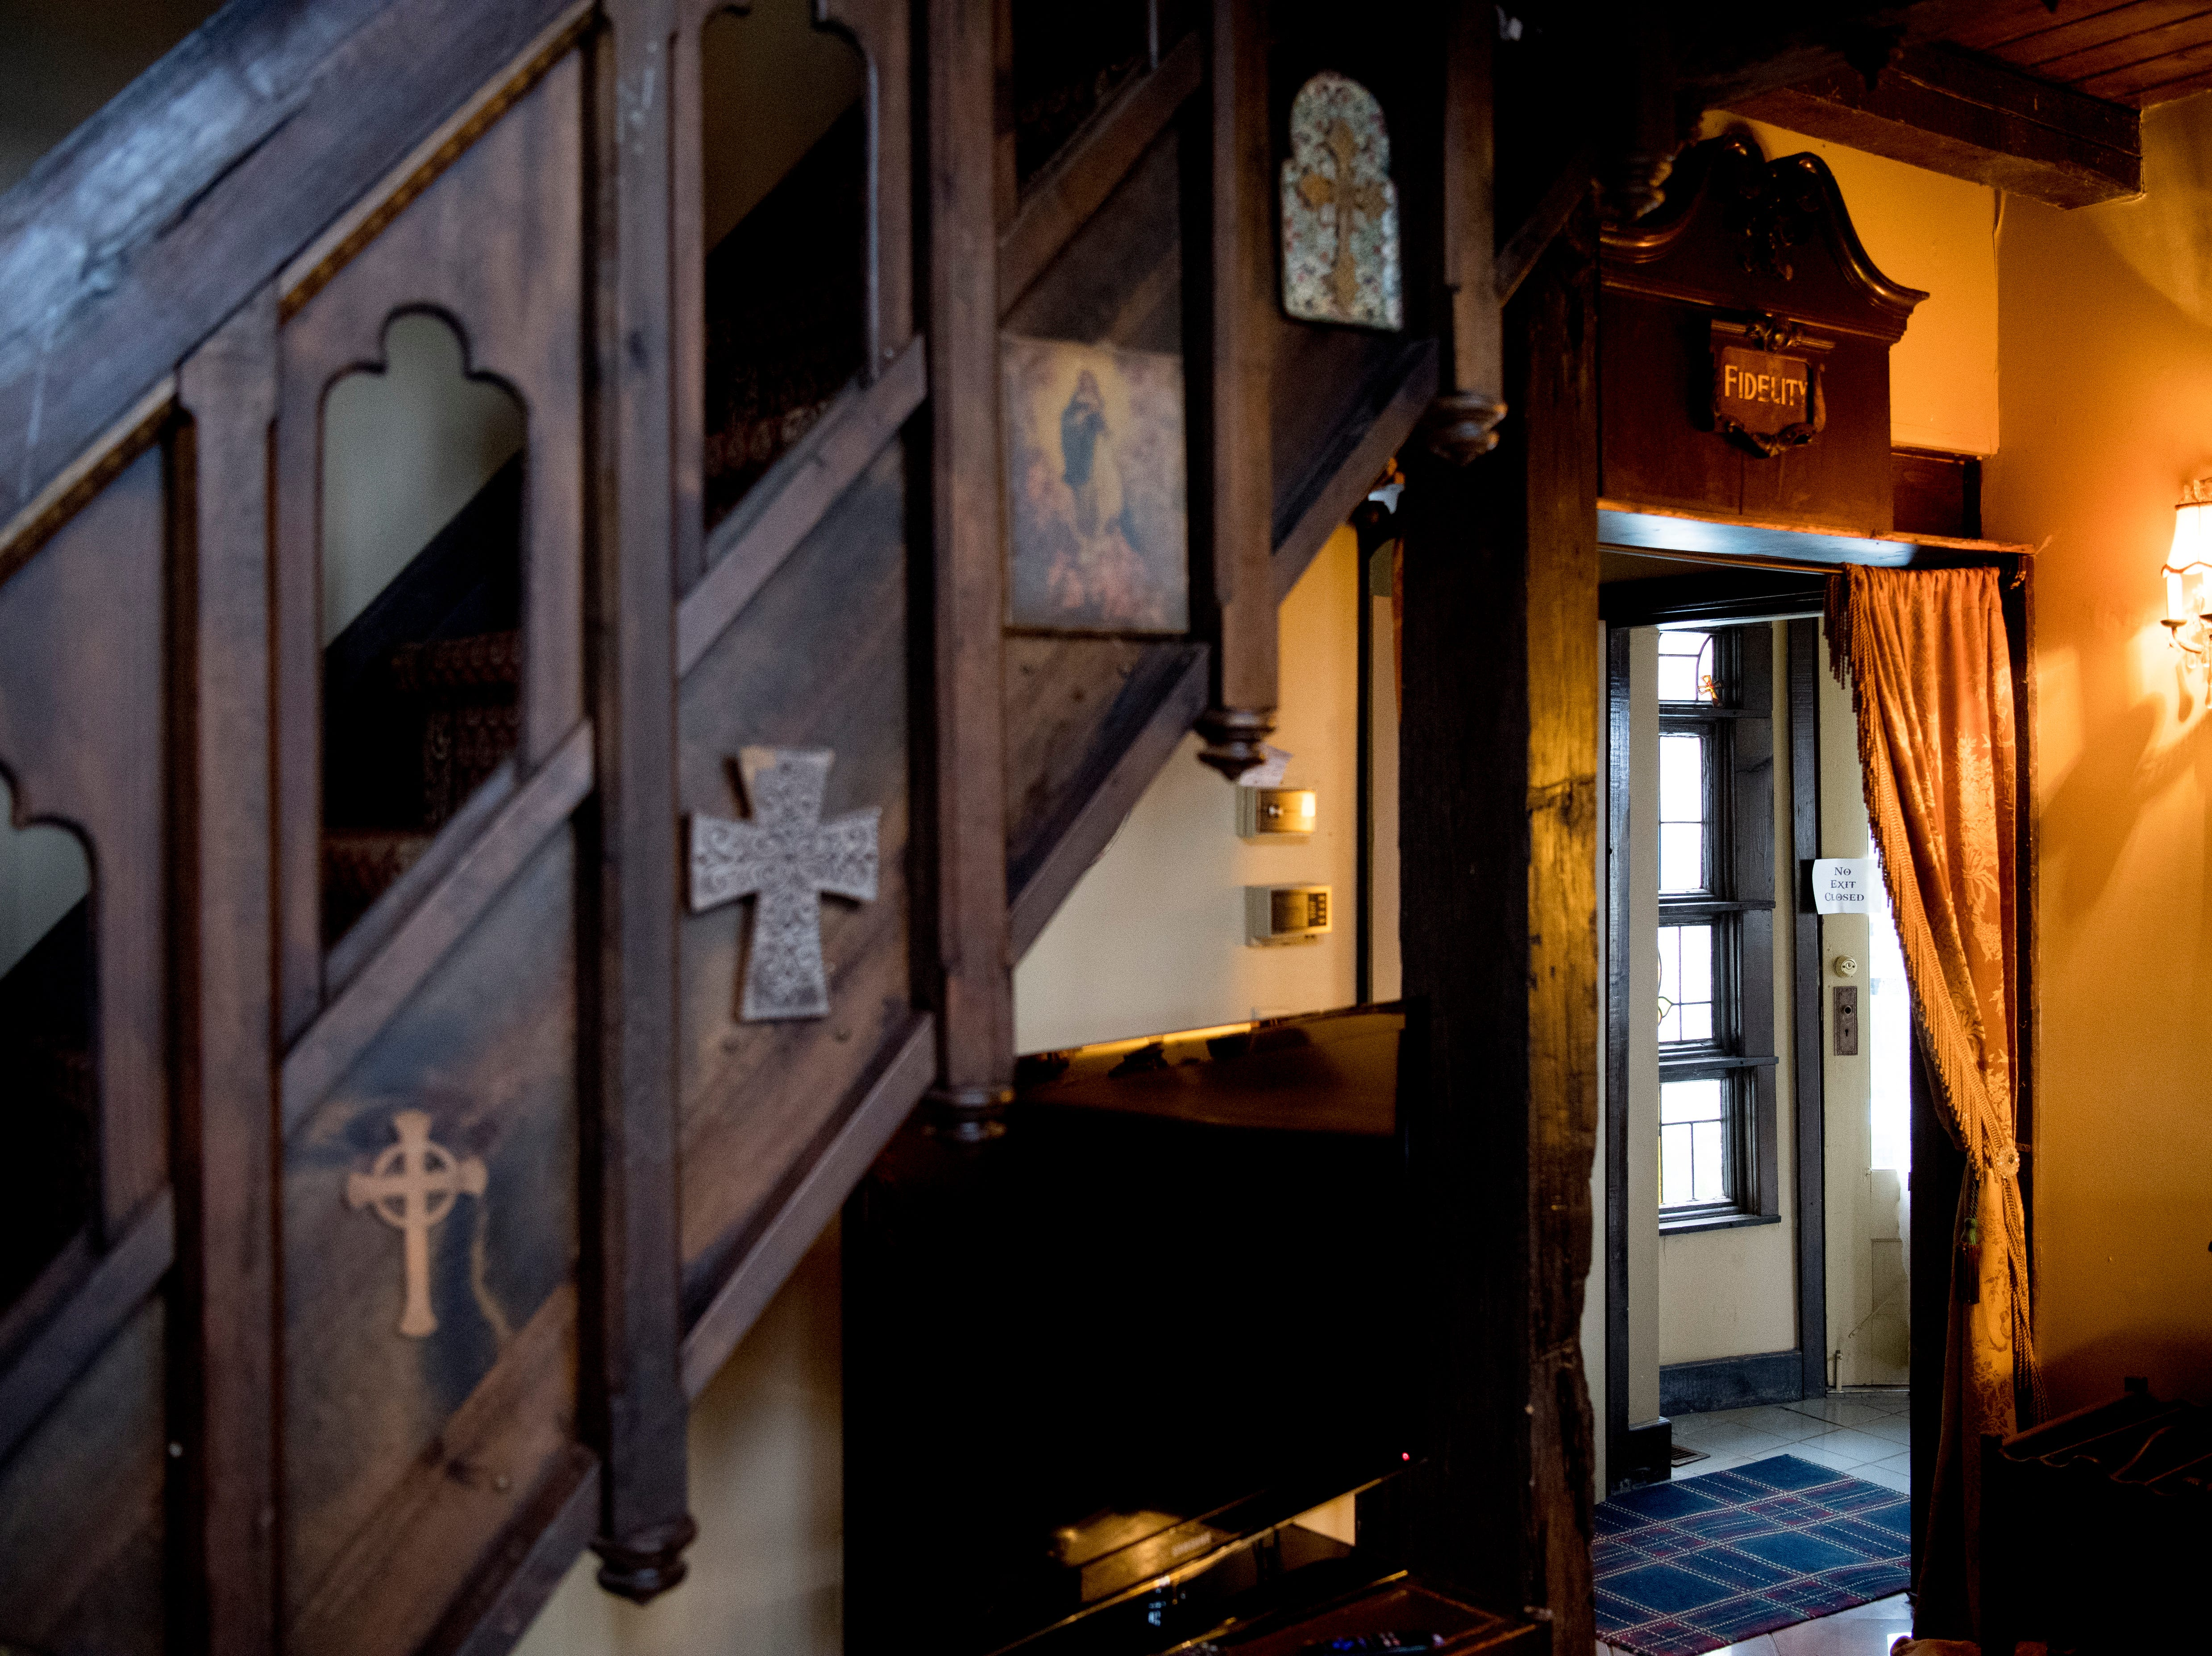 A staircase leads to the upstairs library in the master bedroom inside Williamswood Castle in South Knoxville, Tennessee on Thursday, January 17, 2019. The home, modeled after a medieval castle, was built by Julia Tucker in 1991 and took 6 years to complete. Many of the items in the home were sourced from around the Knoxville area.